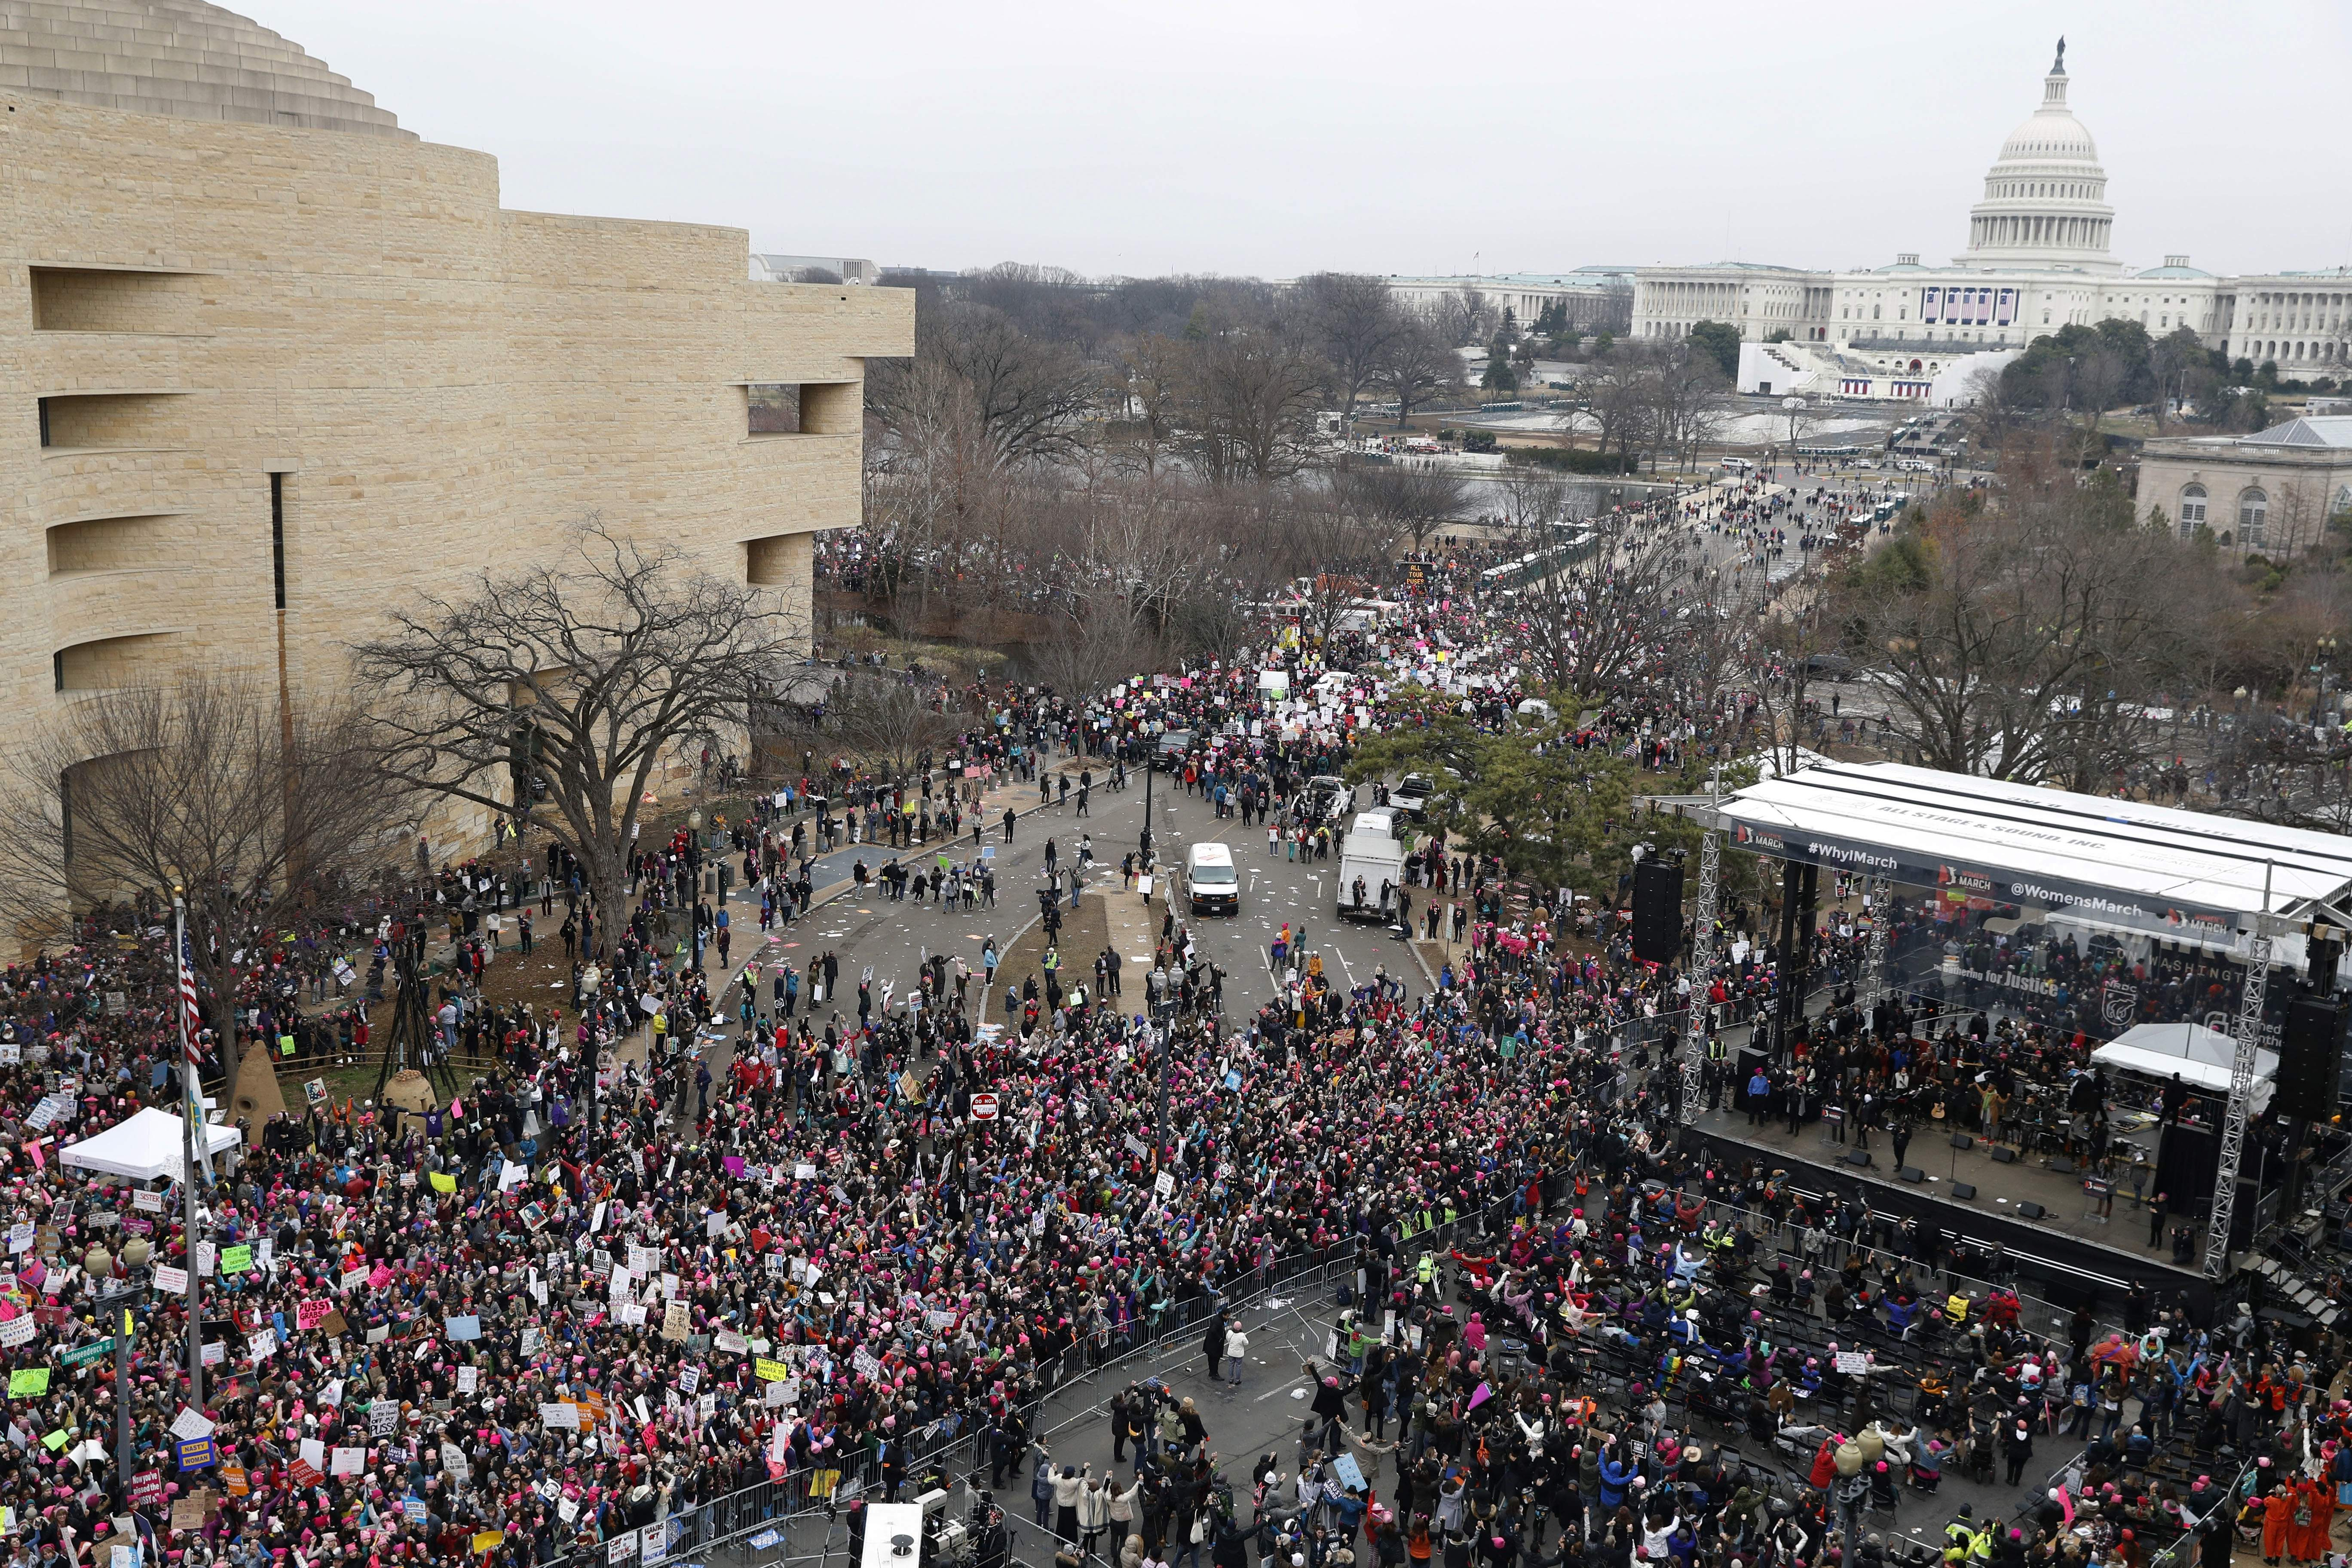 A crowd fills Independence Avenue looking towards the U.S. Capitol and the stage, lower right, during the Women's March on Washington, Saturday, Jan. 21, 2017 in Washington. THE ASSOCIATED PRESS